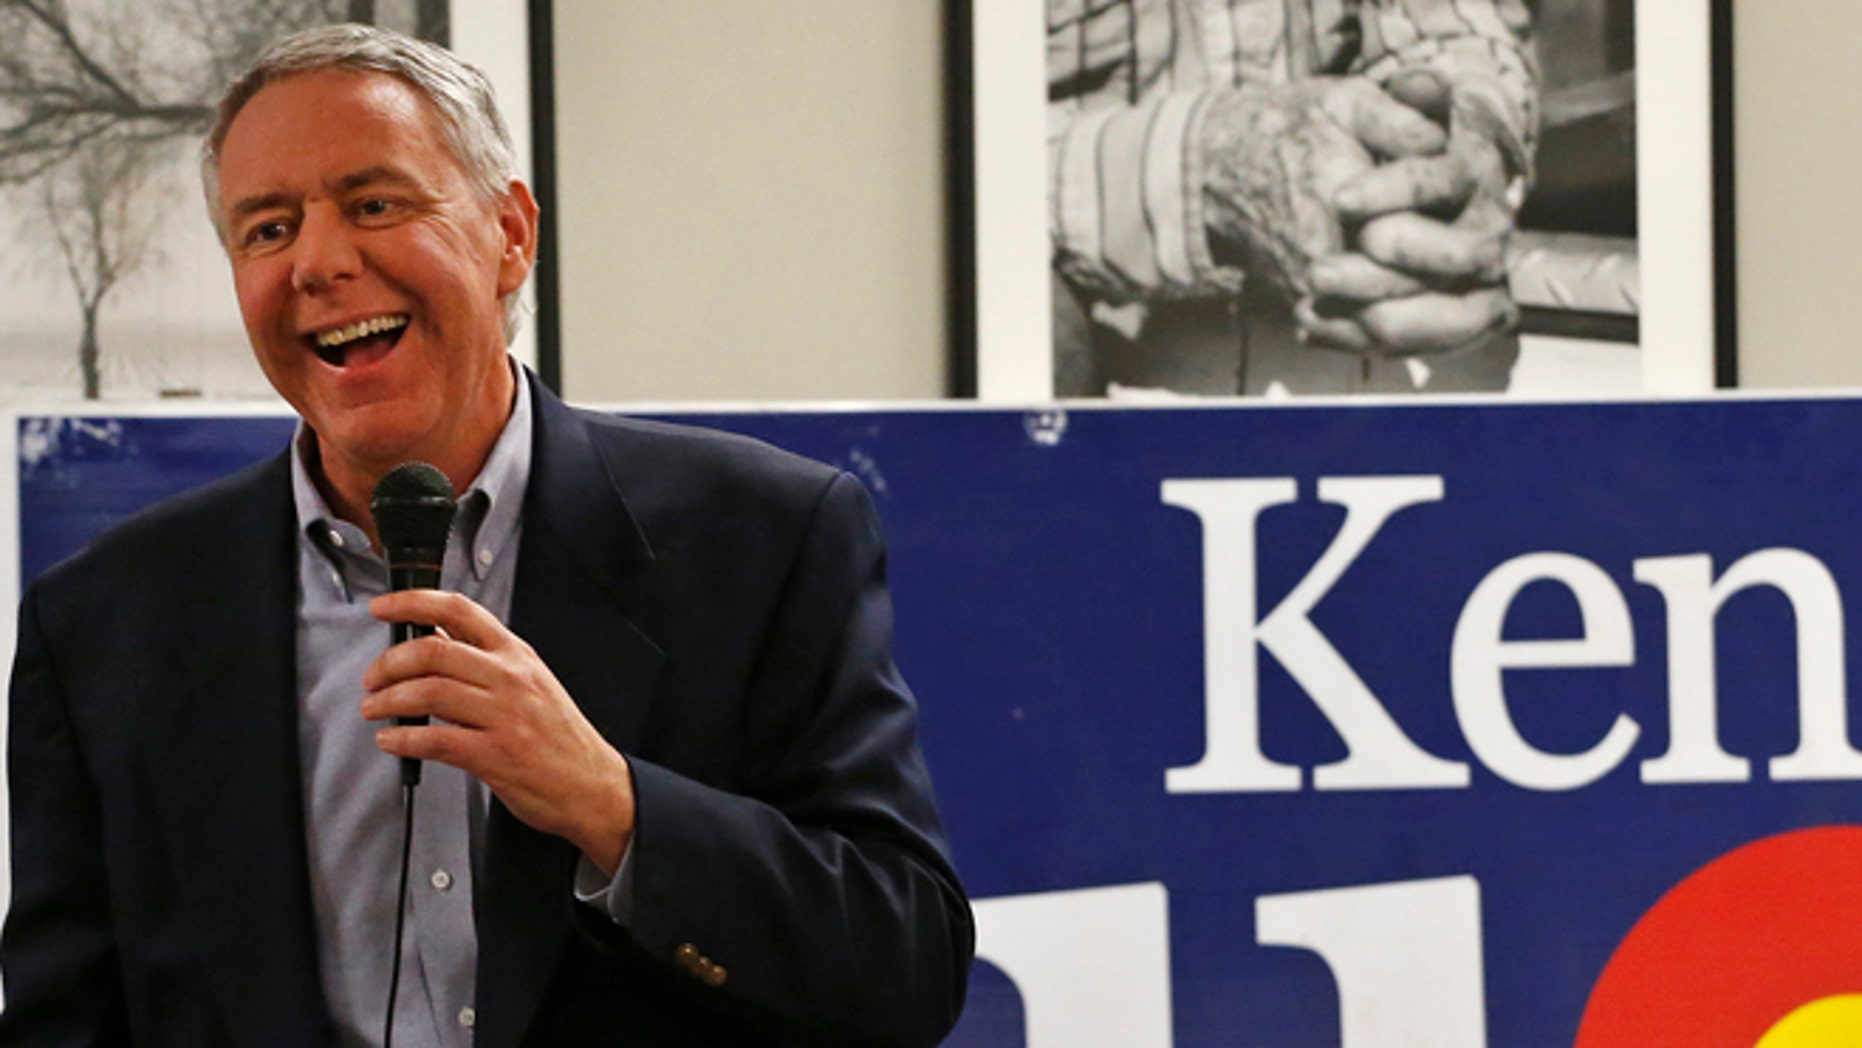 FILE: Jan. 24, 2014: Ken Buck, front-runner in the Colorado GOP primary for the Senate race, in Johnstown, Colo.